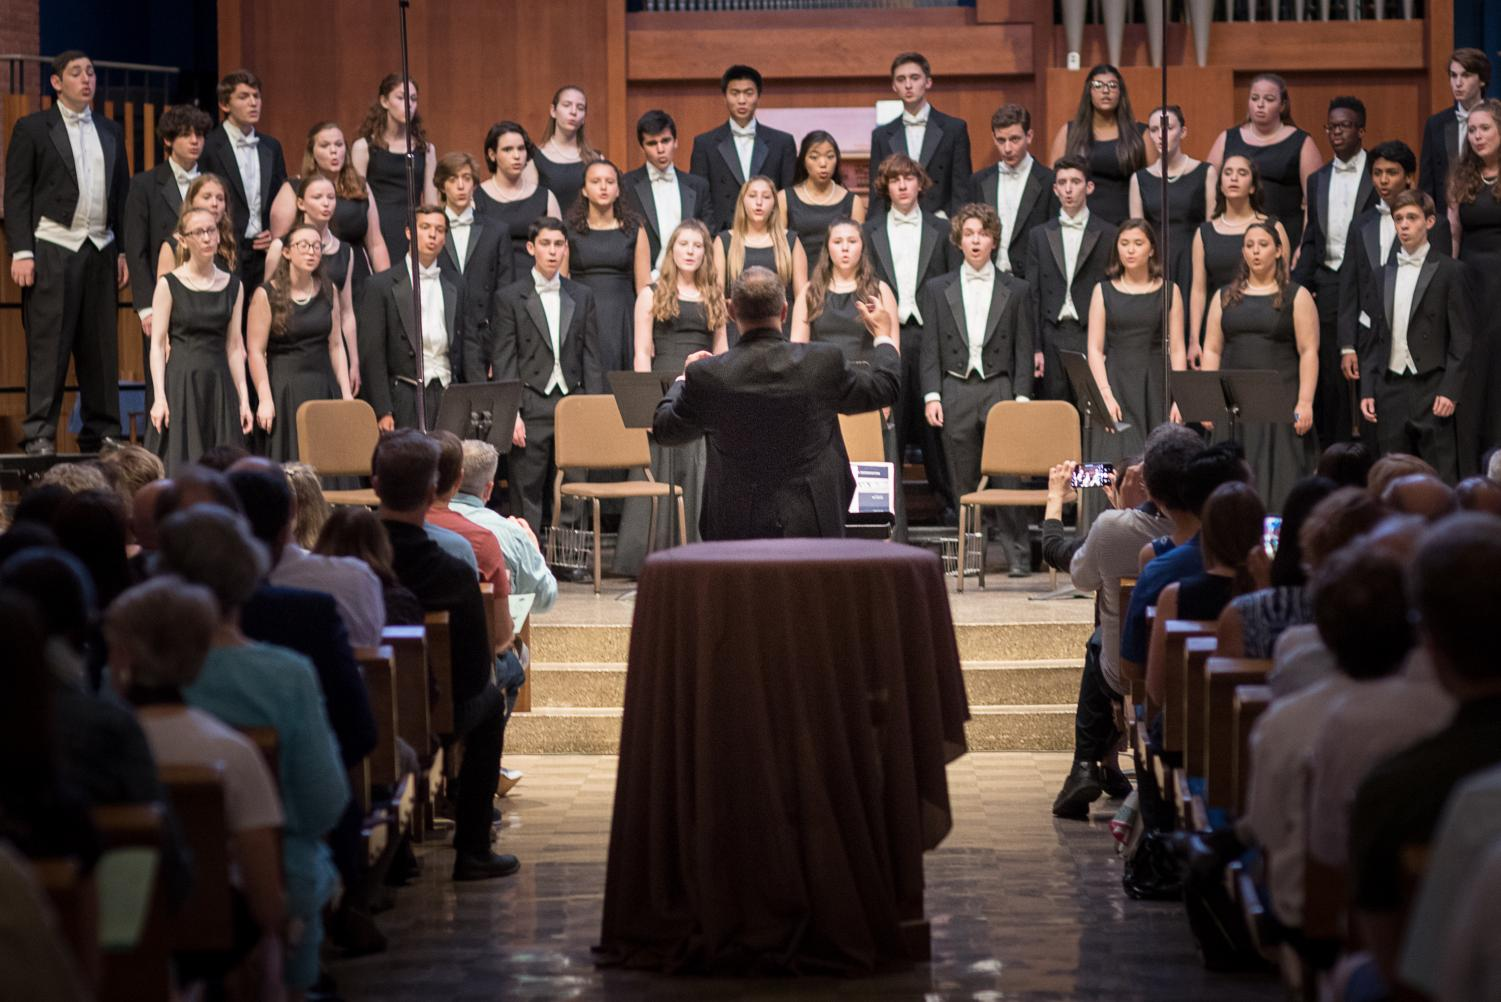 Choral director Jeff Davidson conducts the Chamber Choir as they sing at their annual farewell concert. Davidson will retire this year after 34 years of teaching at Whitman.